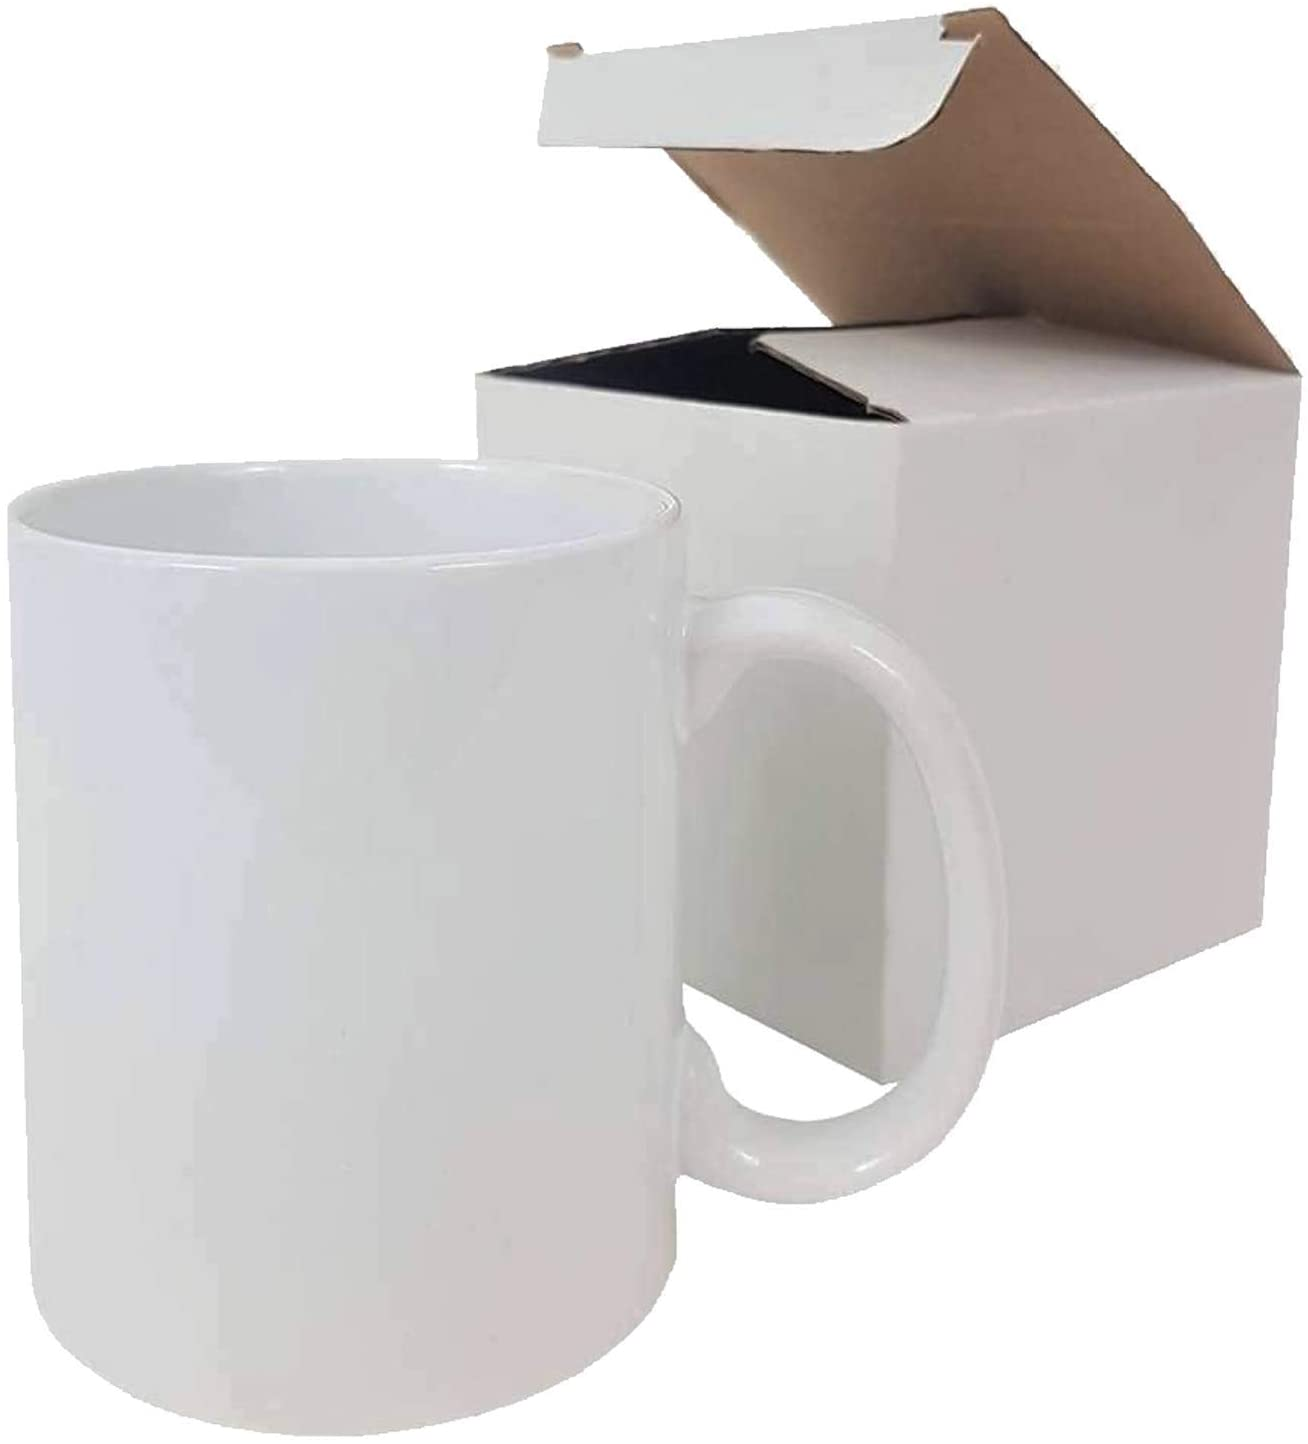 11 oz Sublimation Blank Ceramic Coffee Mugs